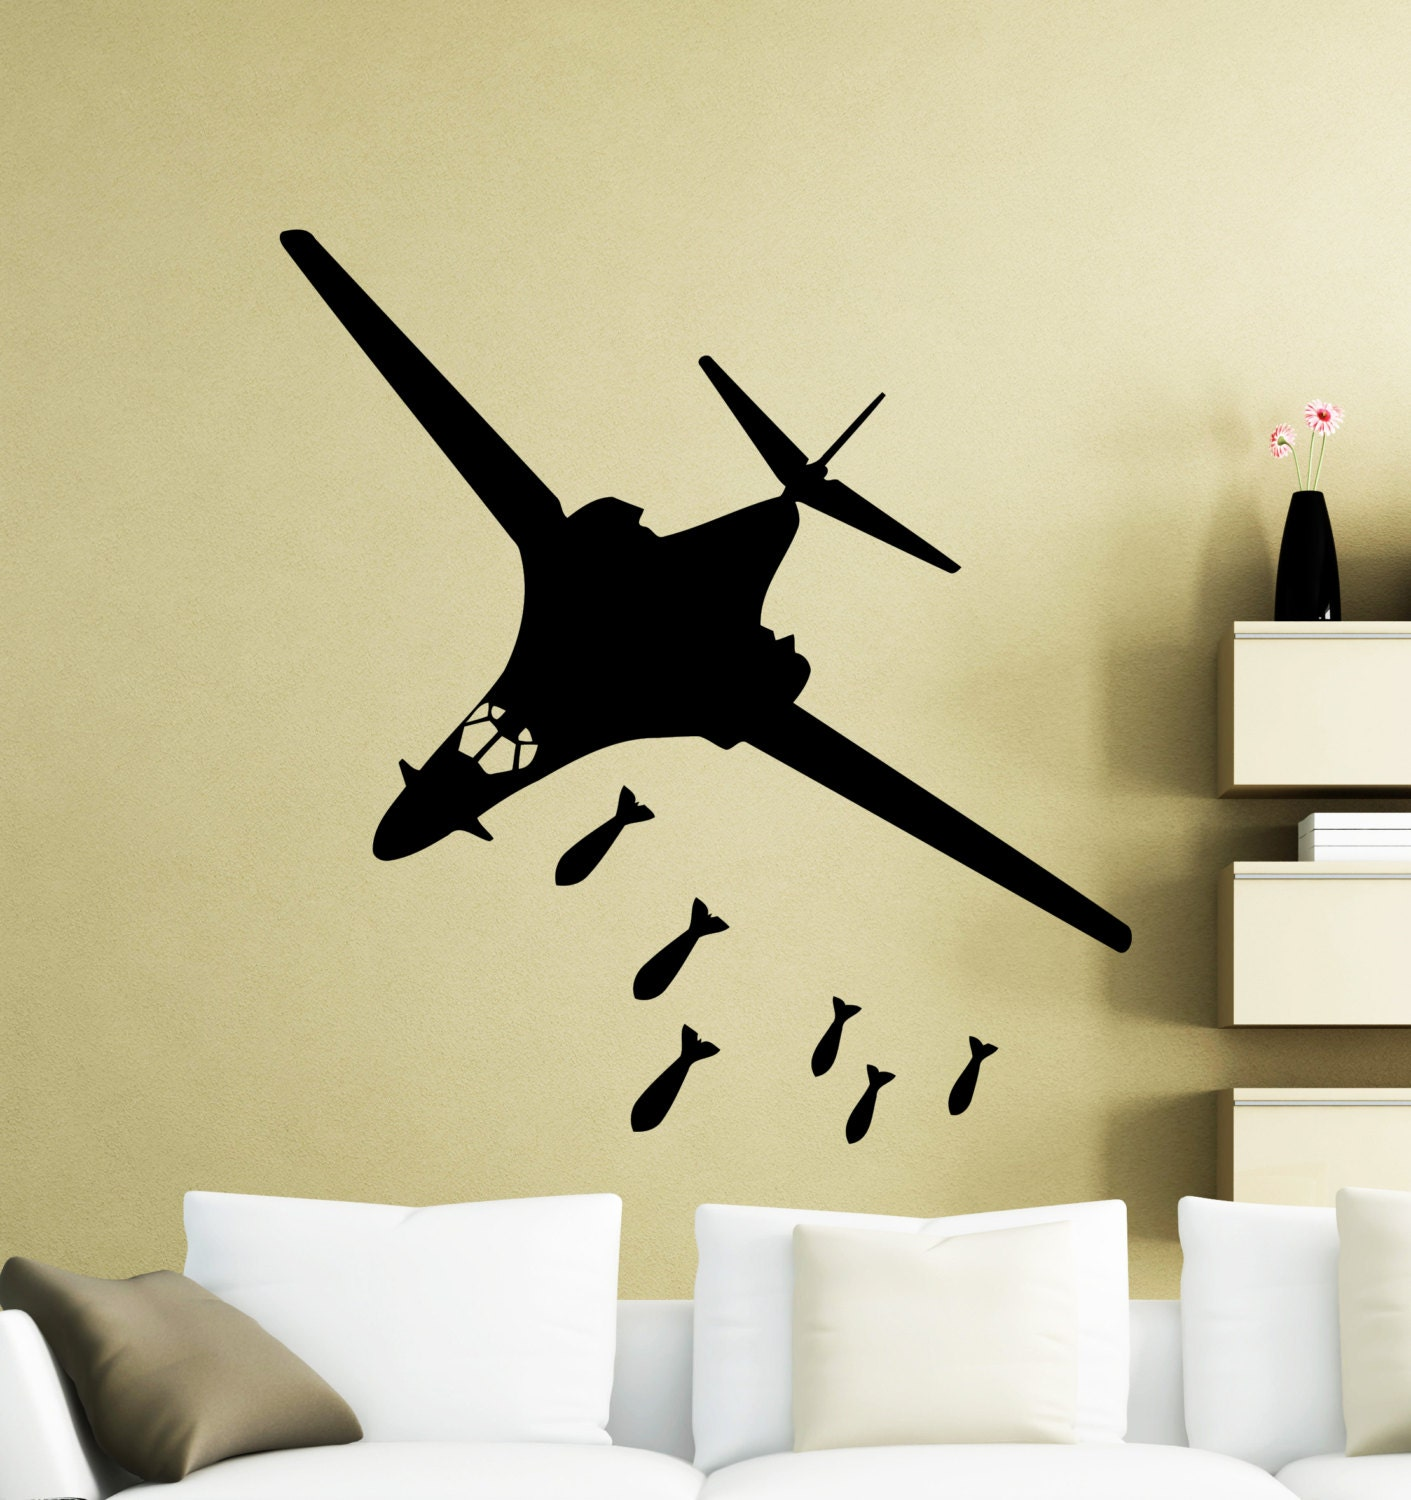 Outstanding Airplane Wall Decor Embellishment - The Wall Art ...